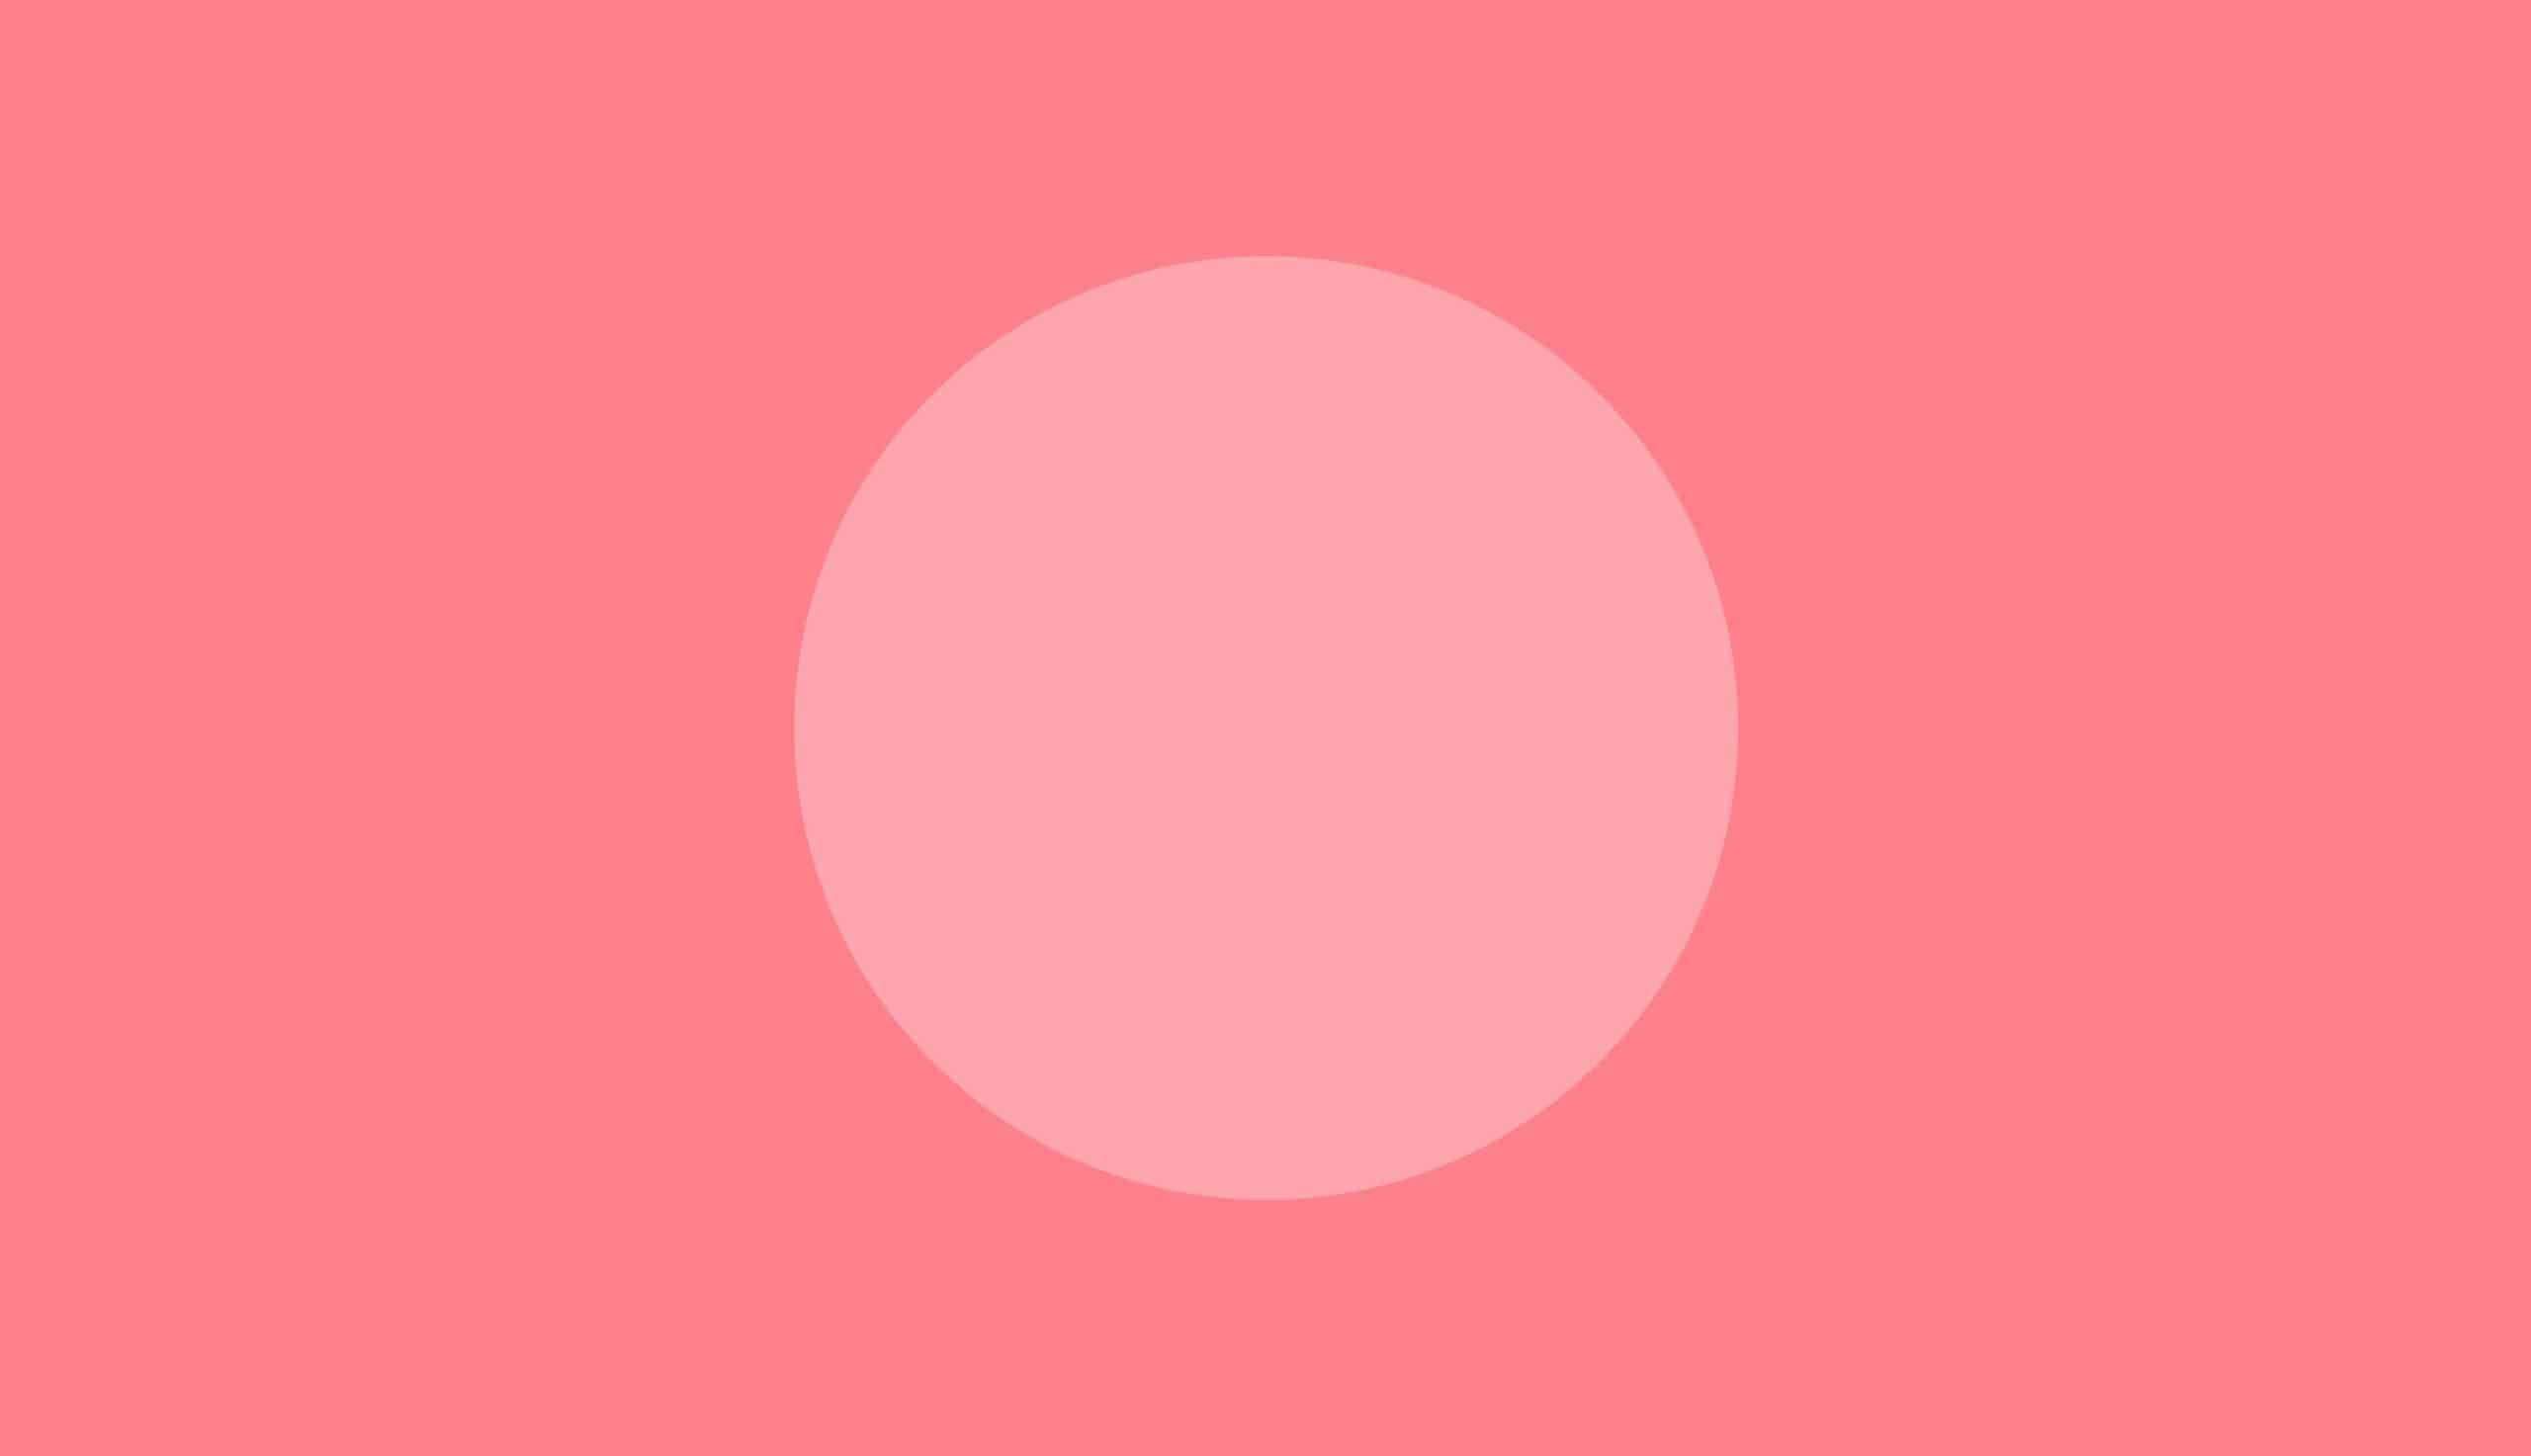 pink dot on a pink background